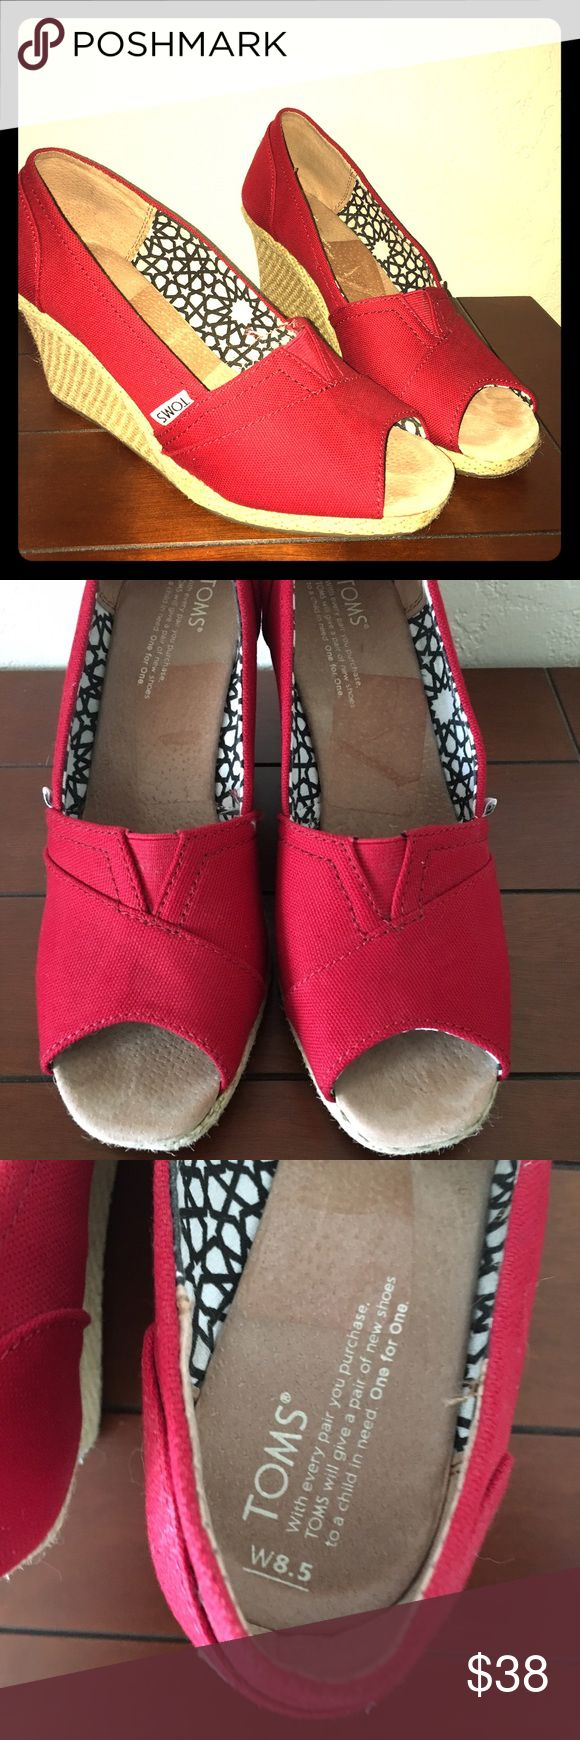 Toms wedge espadrilles peep toe red 8.5 heels rope TOMS wedge espadrilles platform peep toe Rockabilly retro  pin-up style . Size 8.5 , very minimal wear. Worn less than 5 times. From my smoke free home. Please ask all questions prior to purchase as all sales are final, no returns. Please note there is some minimal sticker residue on the inside , as I just recently remove the price-Sz stickers.  My home is smoke free. TOMS Shoes Espadrilles